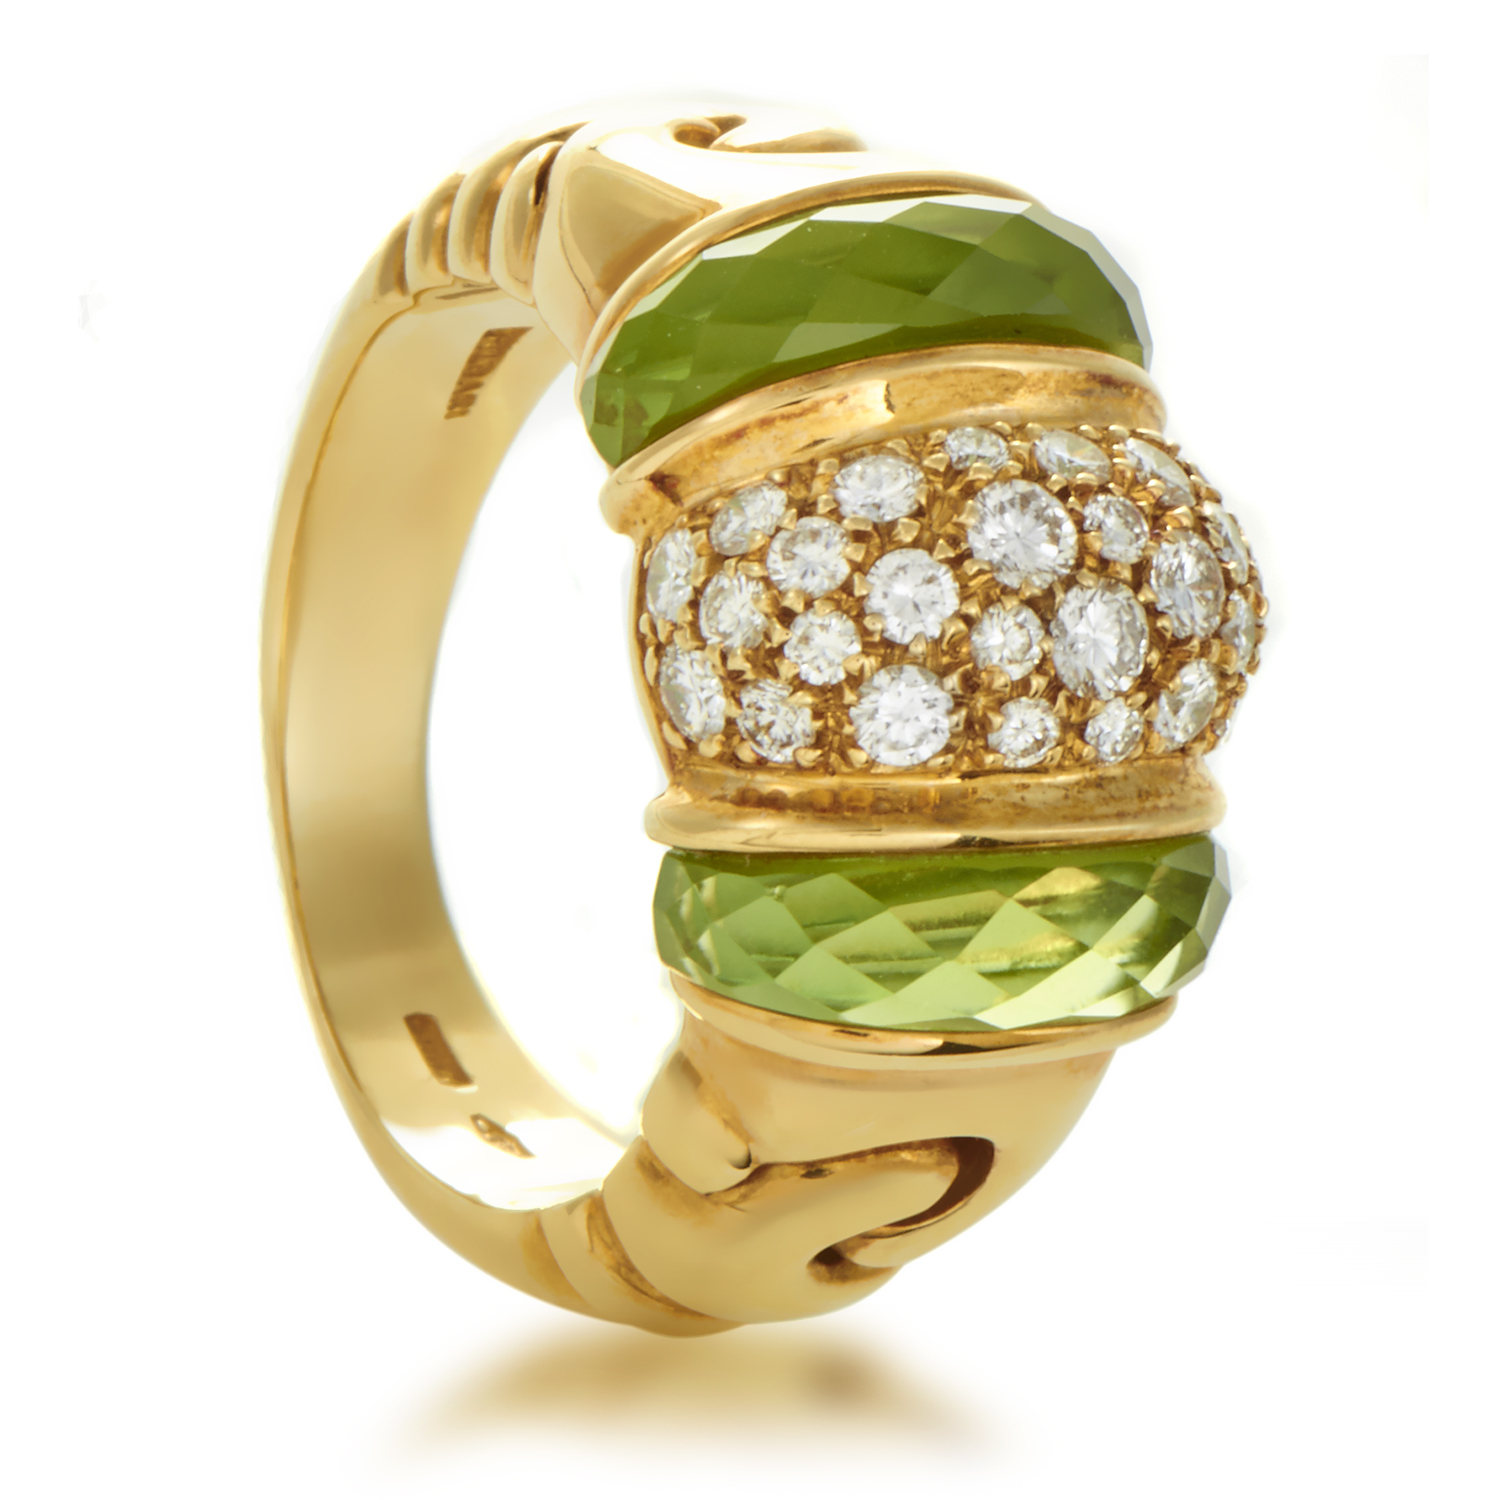 Bvlgari Ganci Women's 18K Yellow Gold Diamond & Peridot Ring